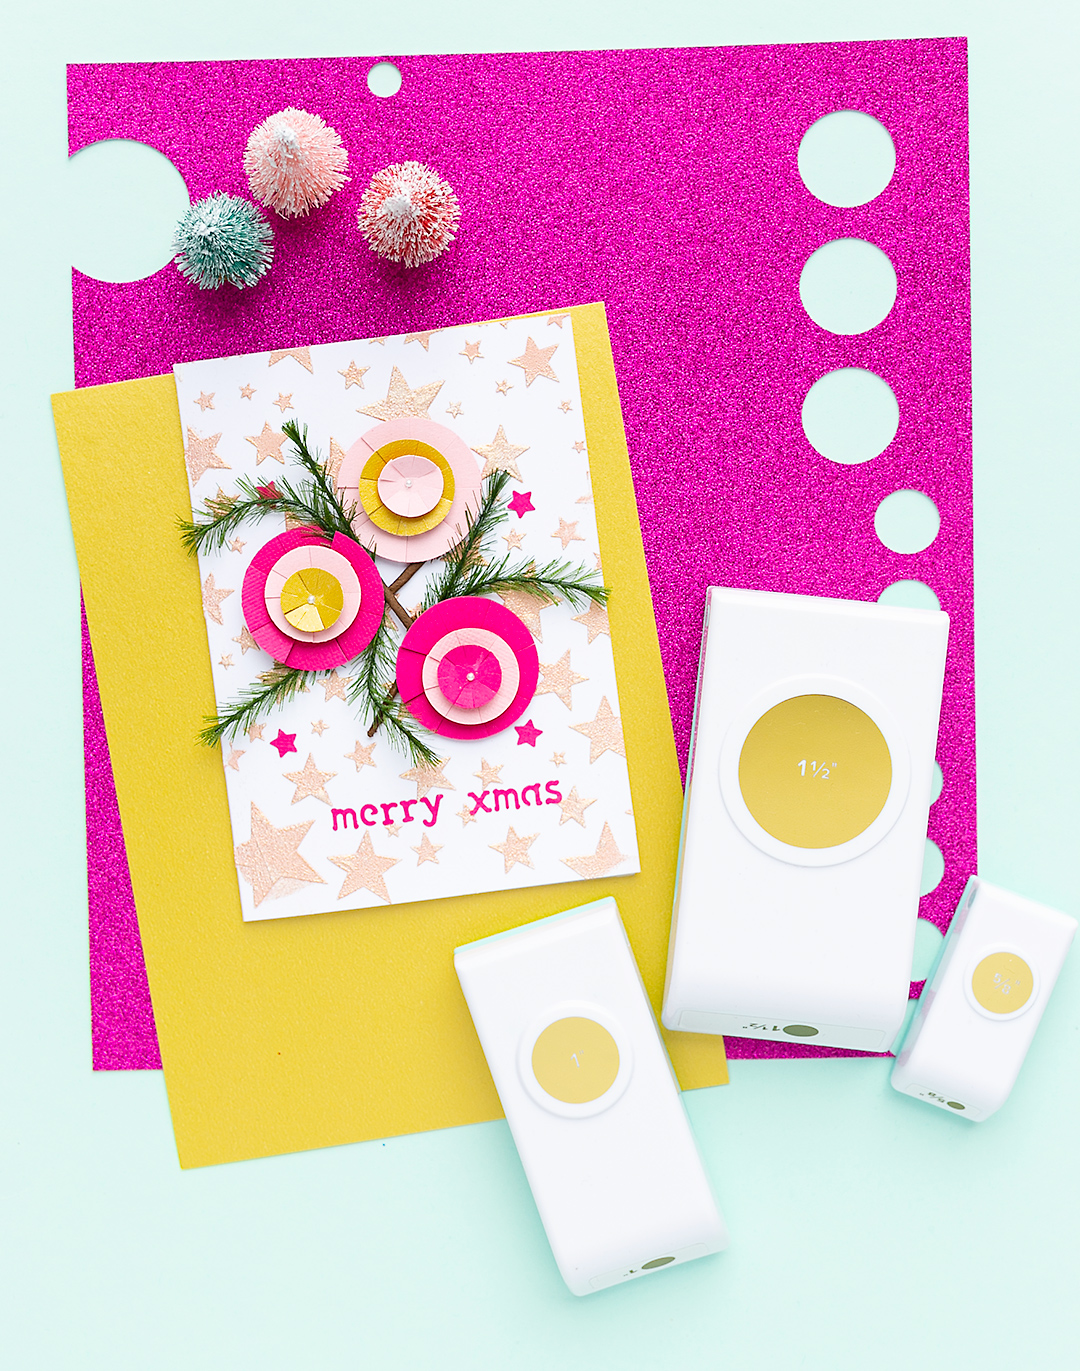 Nesting Punch Circle on gold and glitter paper with a Christmas card and three handmade ornaments.